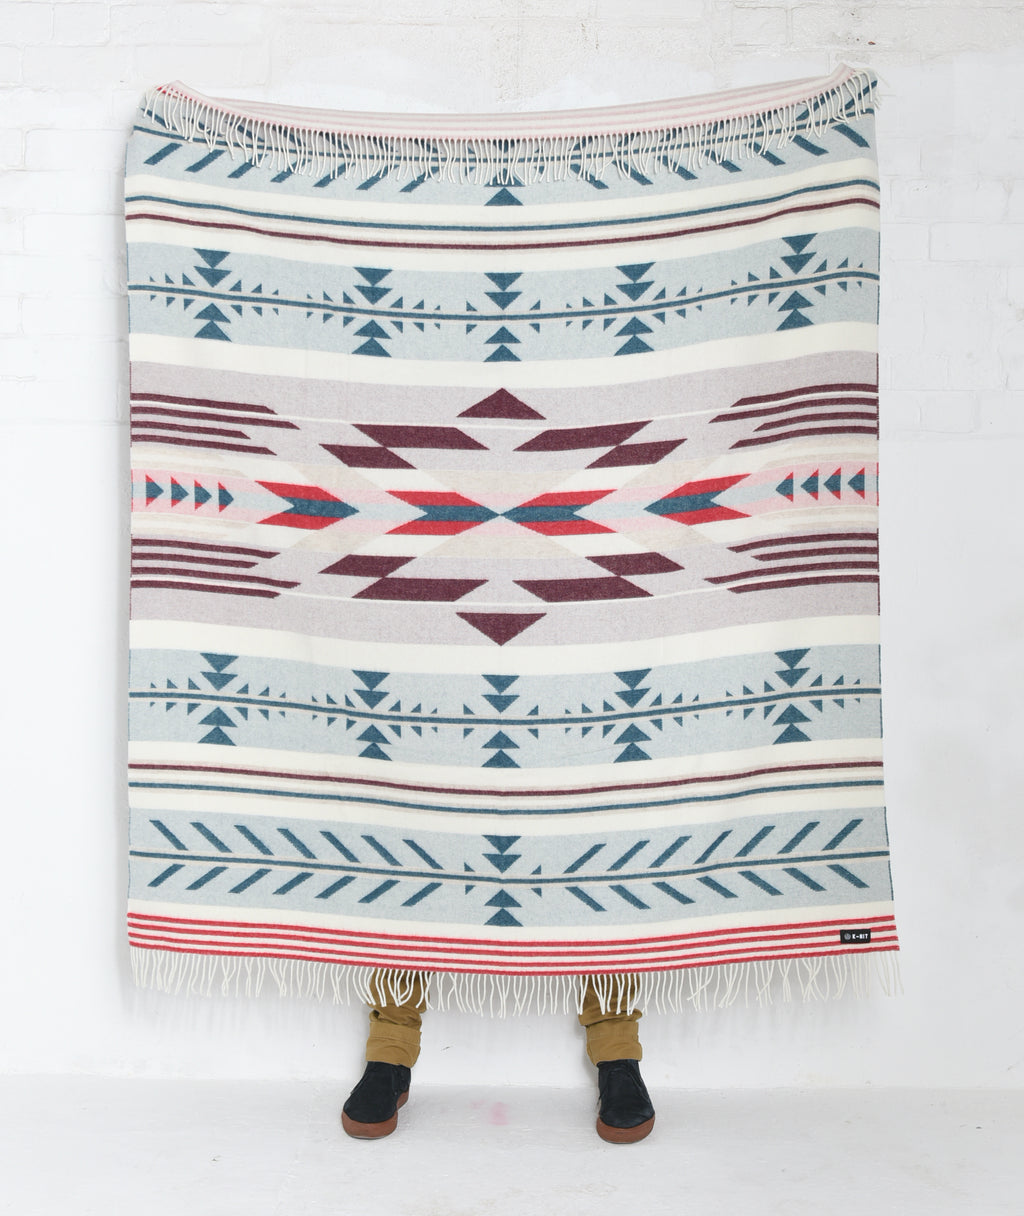 Nava Say Nava Woven Blanket - Cream